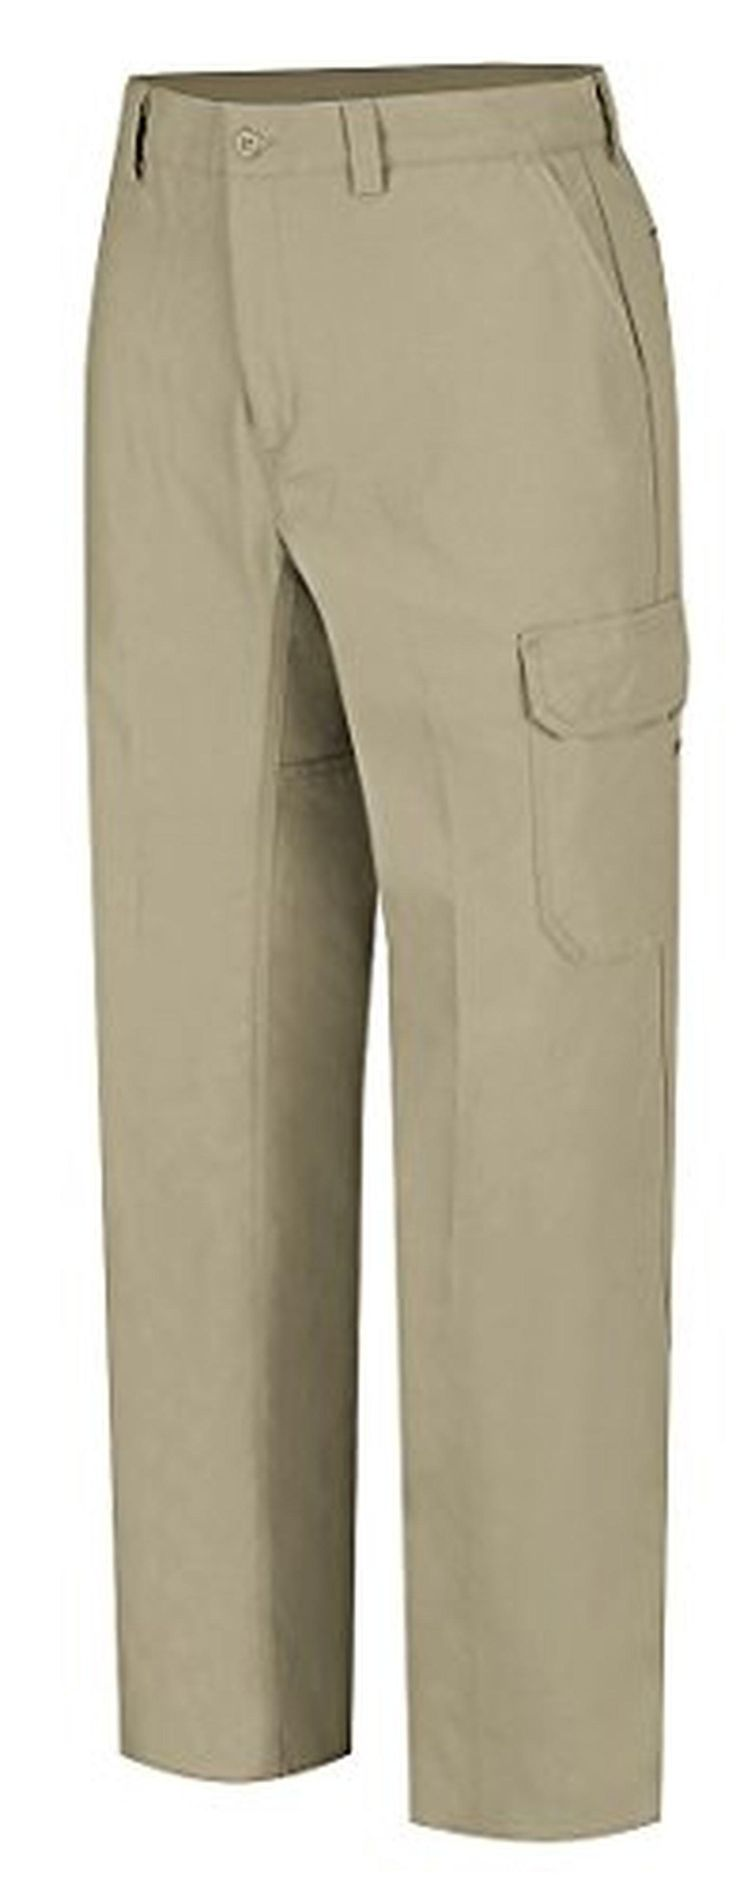 VF Corporation - WP80KH3630 - Men's Work Pants, Cotton/Polyester, Color: Khaki, Fits Waist Size: 36 x 30 - Brought to you by Avarsha.com